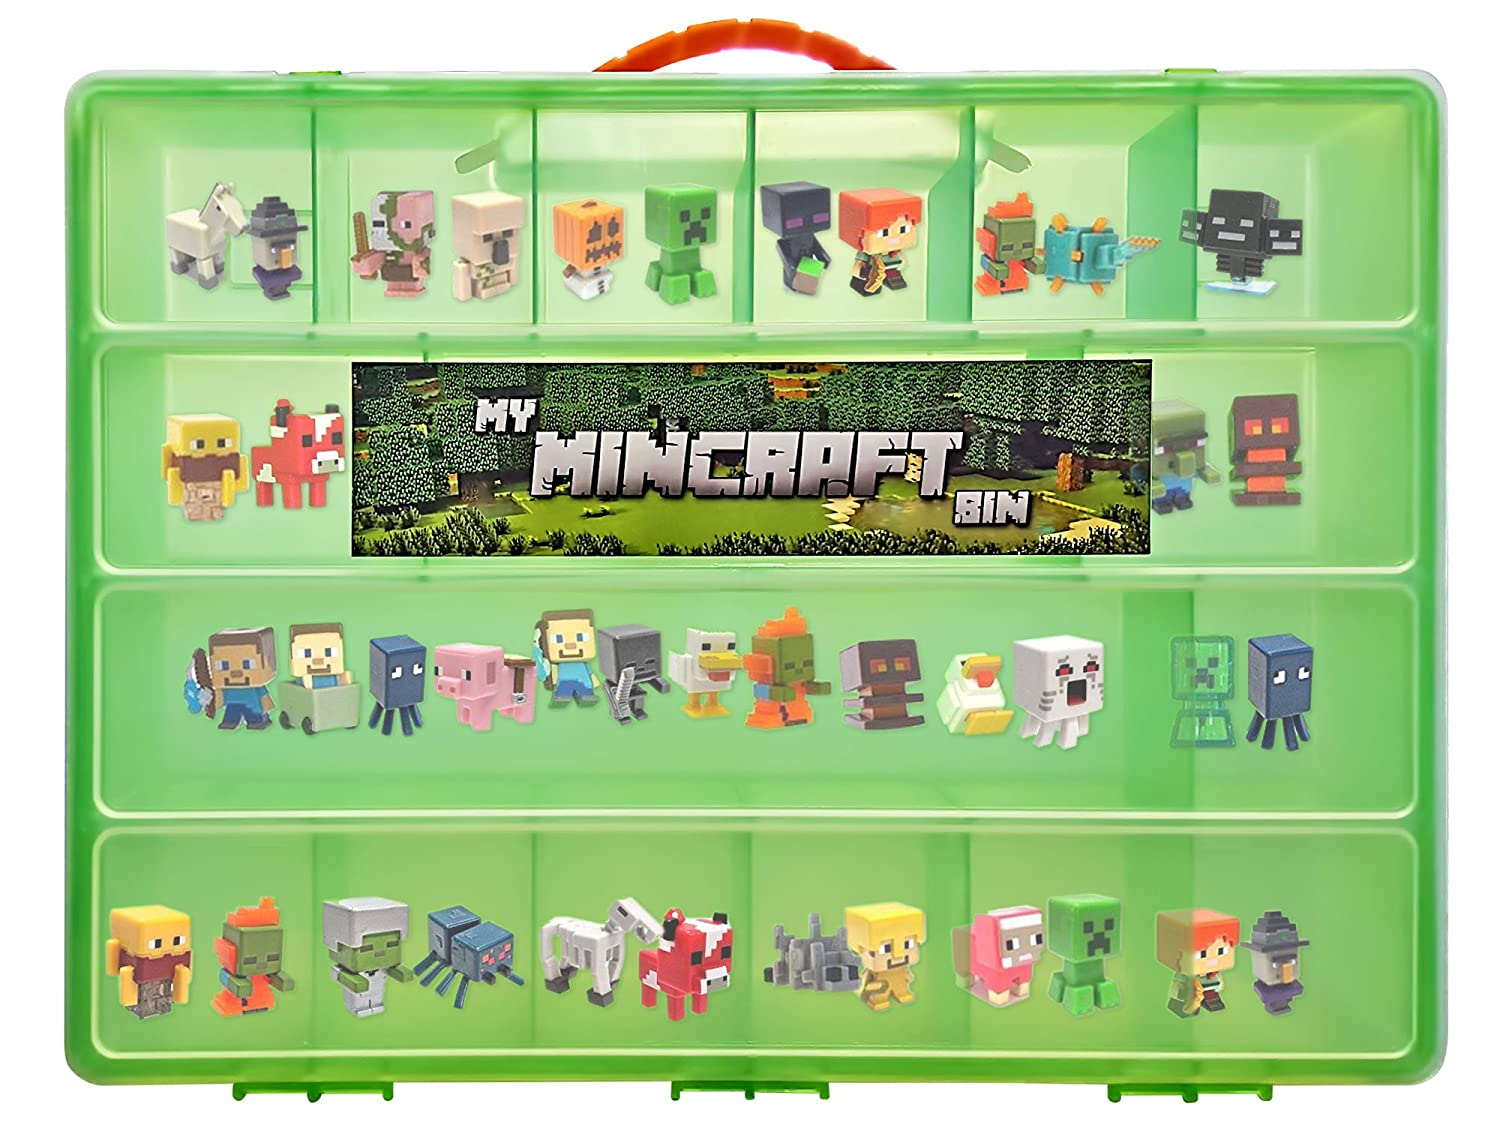 Minecraft Mini Figure Compatible Storage Case with Carrying Handle- My Mincraft Bin Carrying Case Holds 100